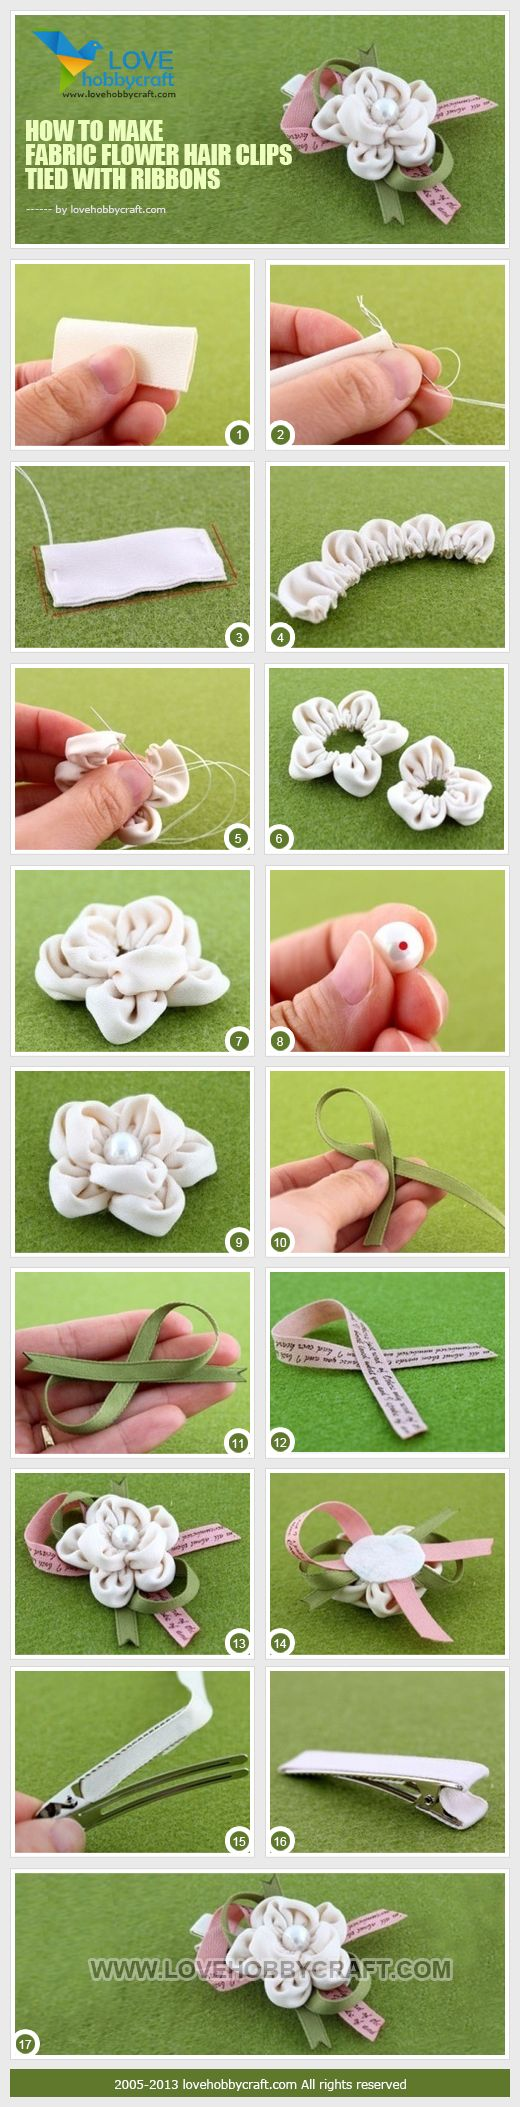 How to make fabric flower hair clips tied with ribbons